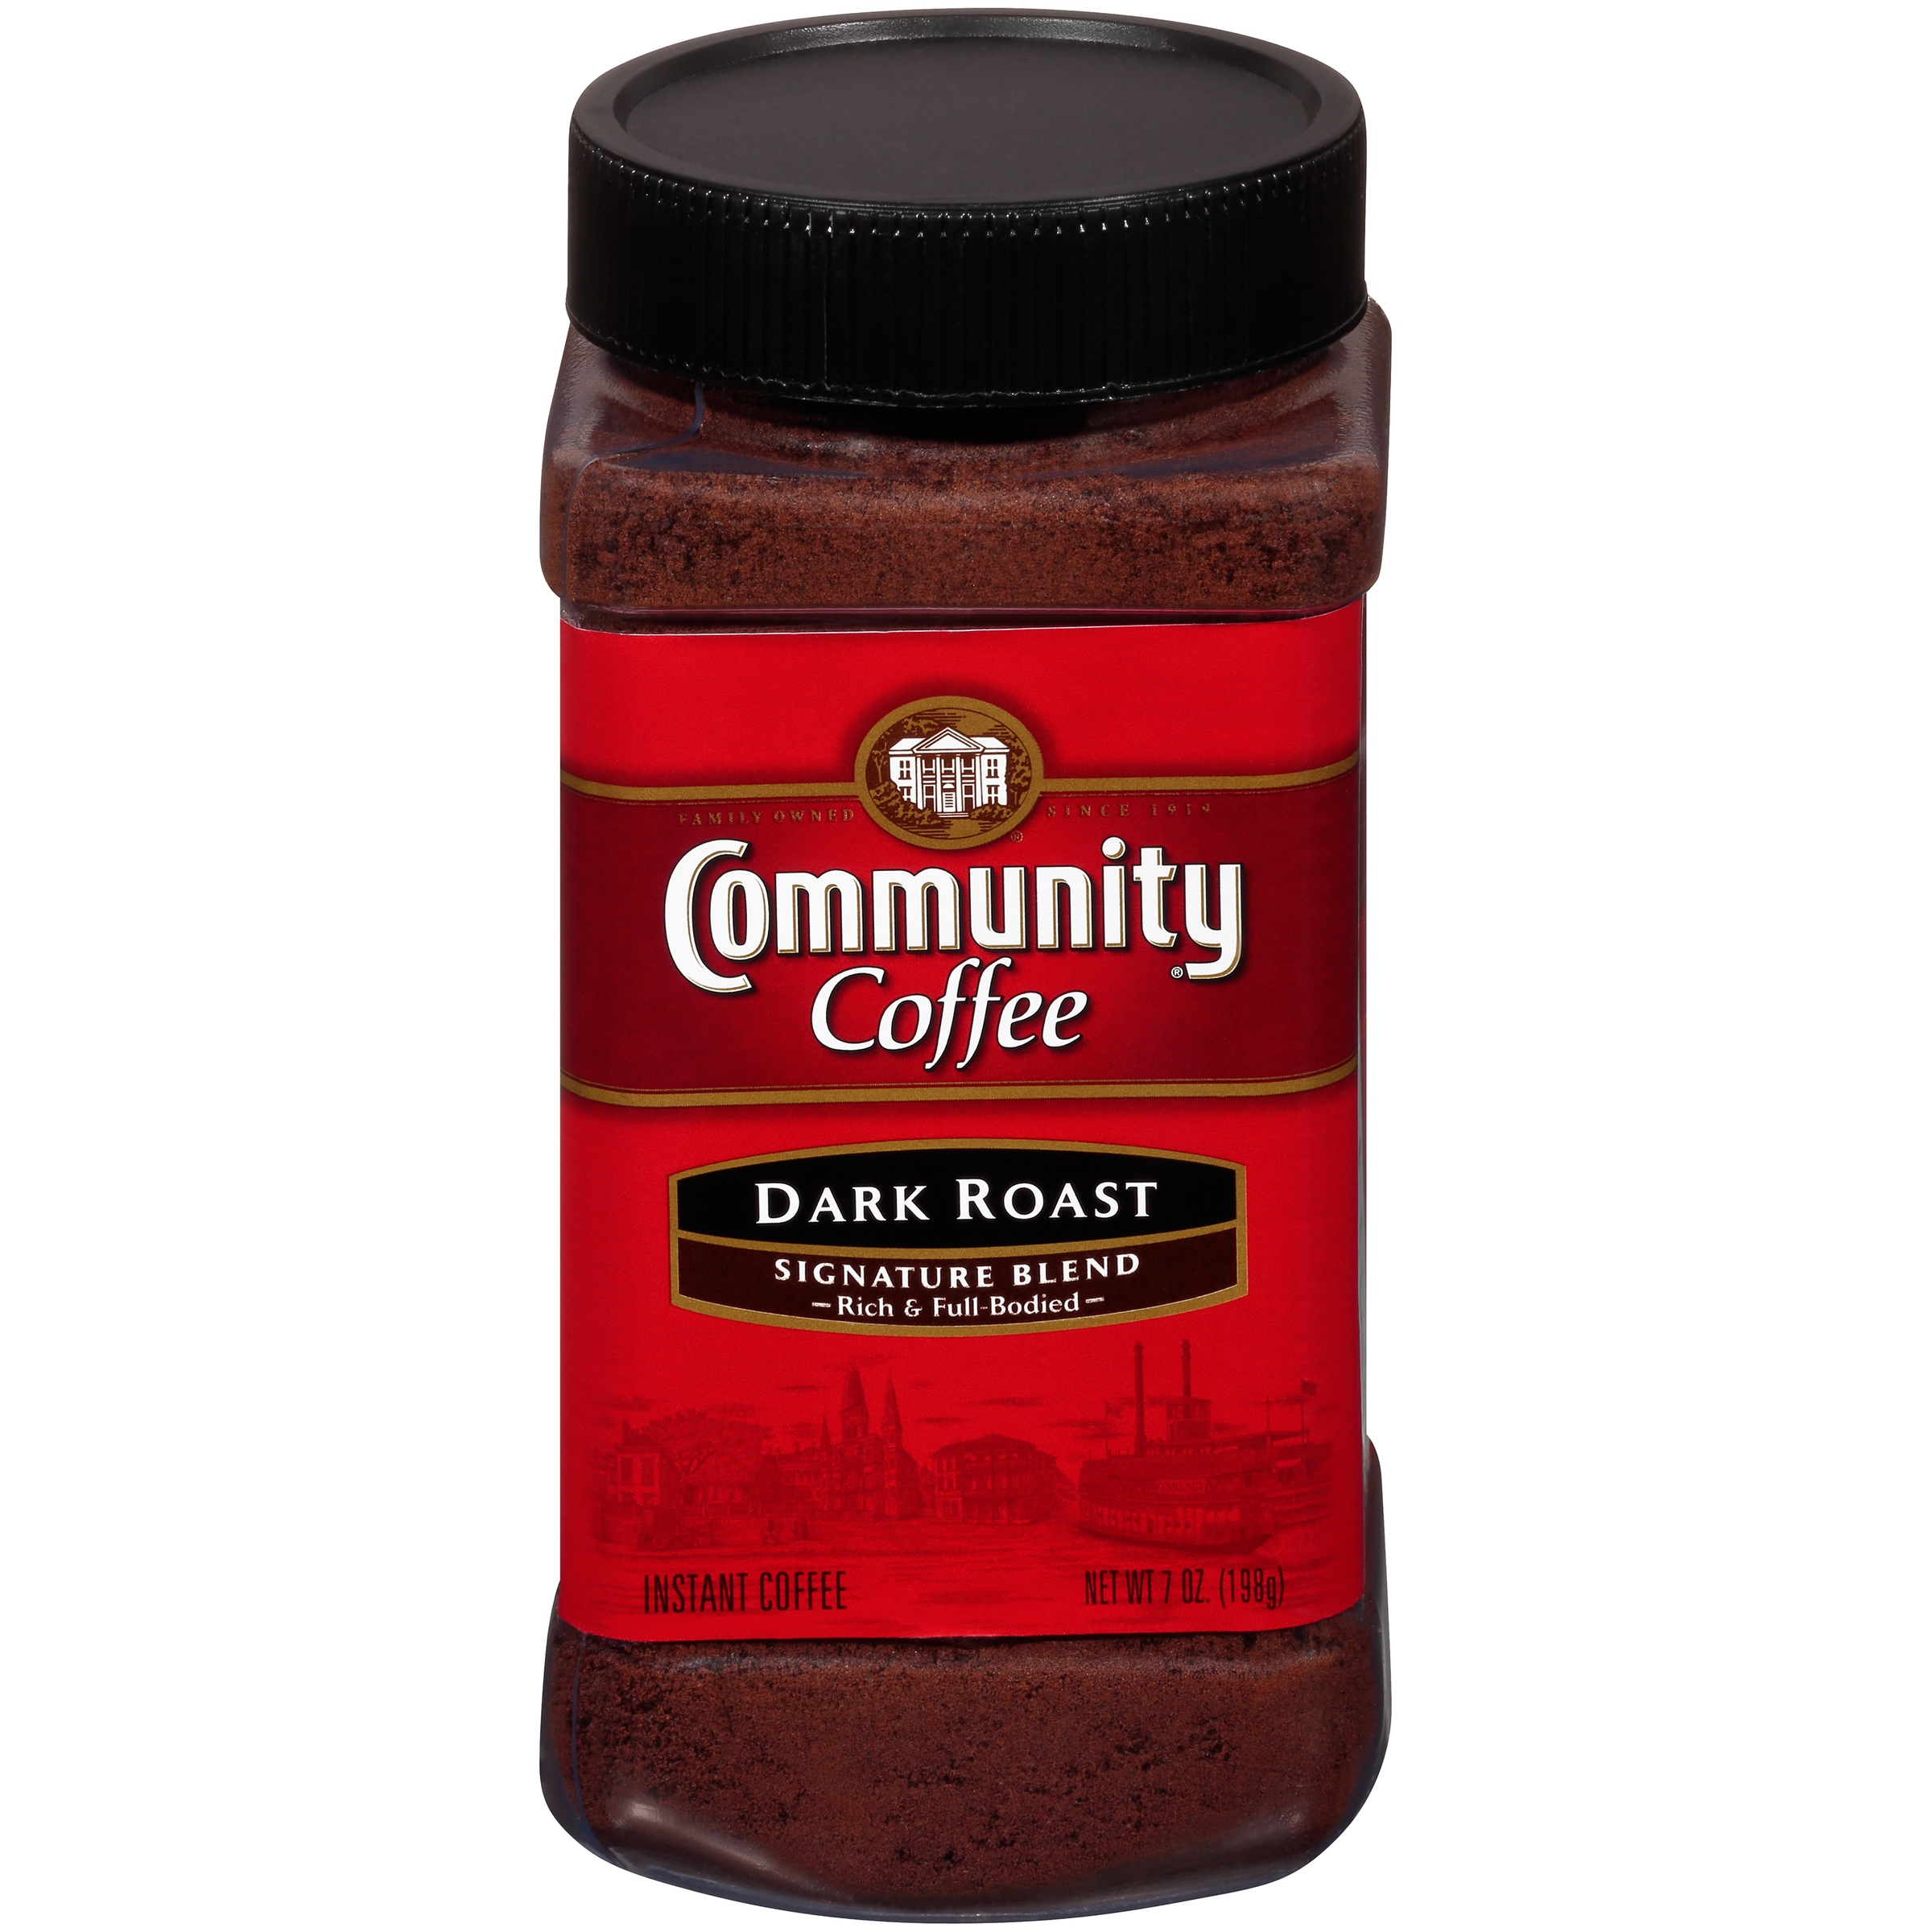 Community Coffee Ground Instant Coffee Signature Blend Dark Roast, 7 Ounce